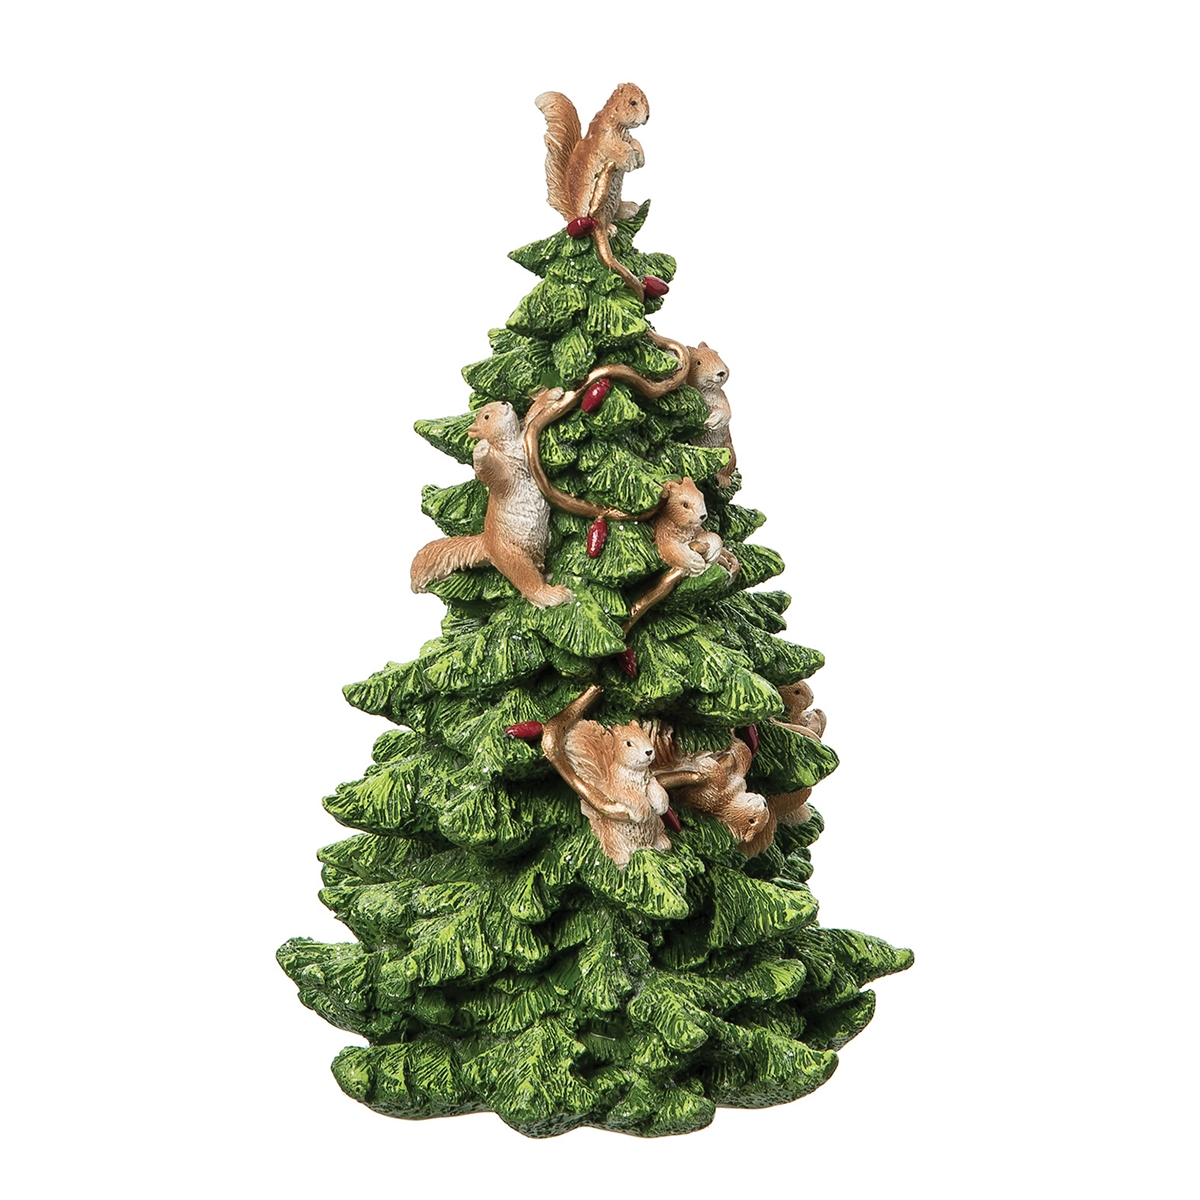 Squirrely Tree Figurine